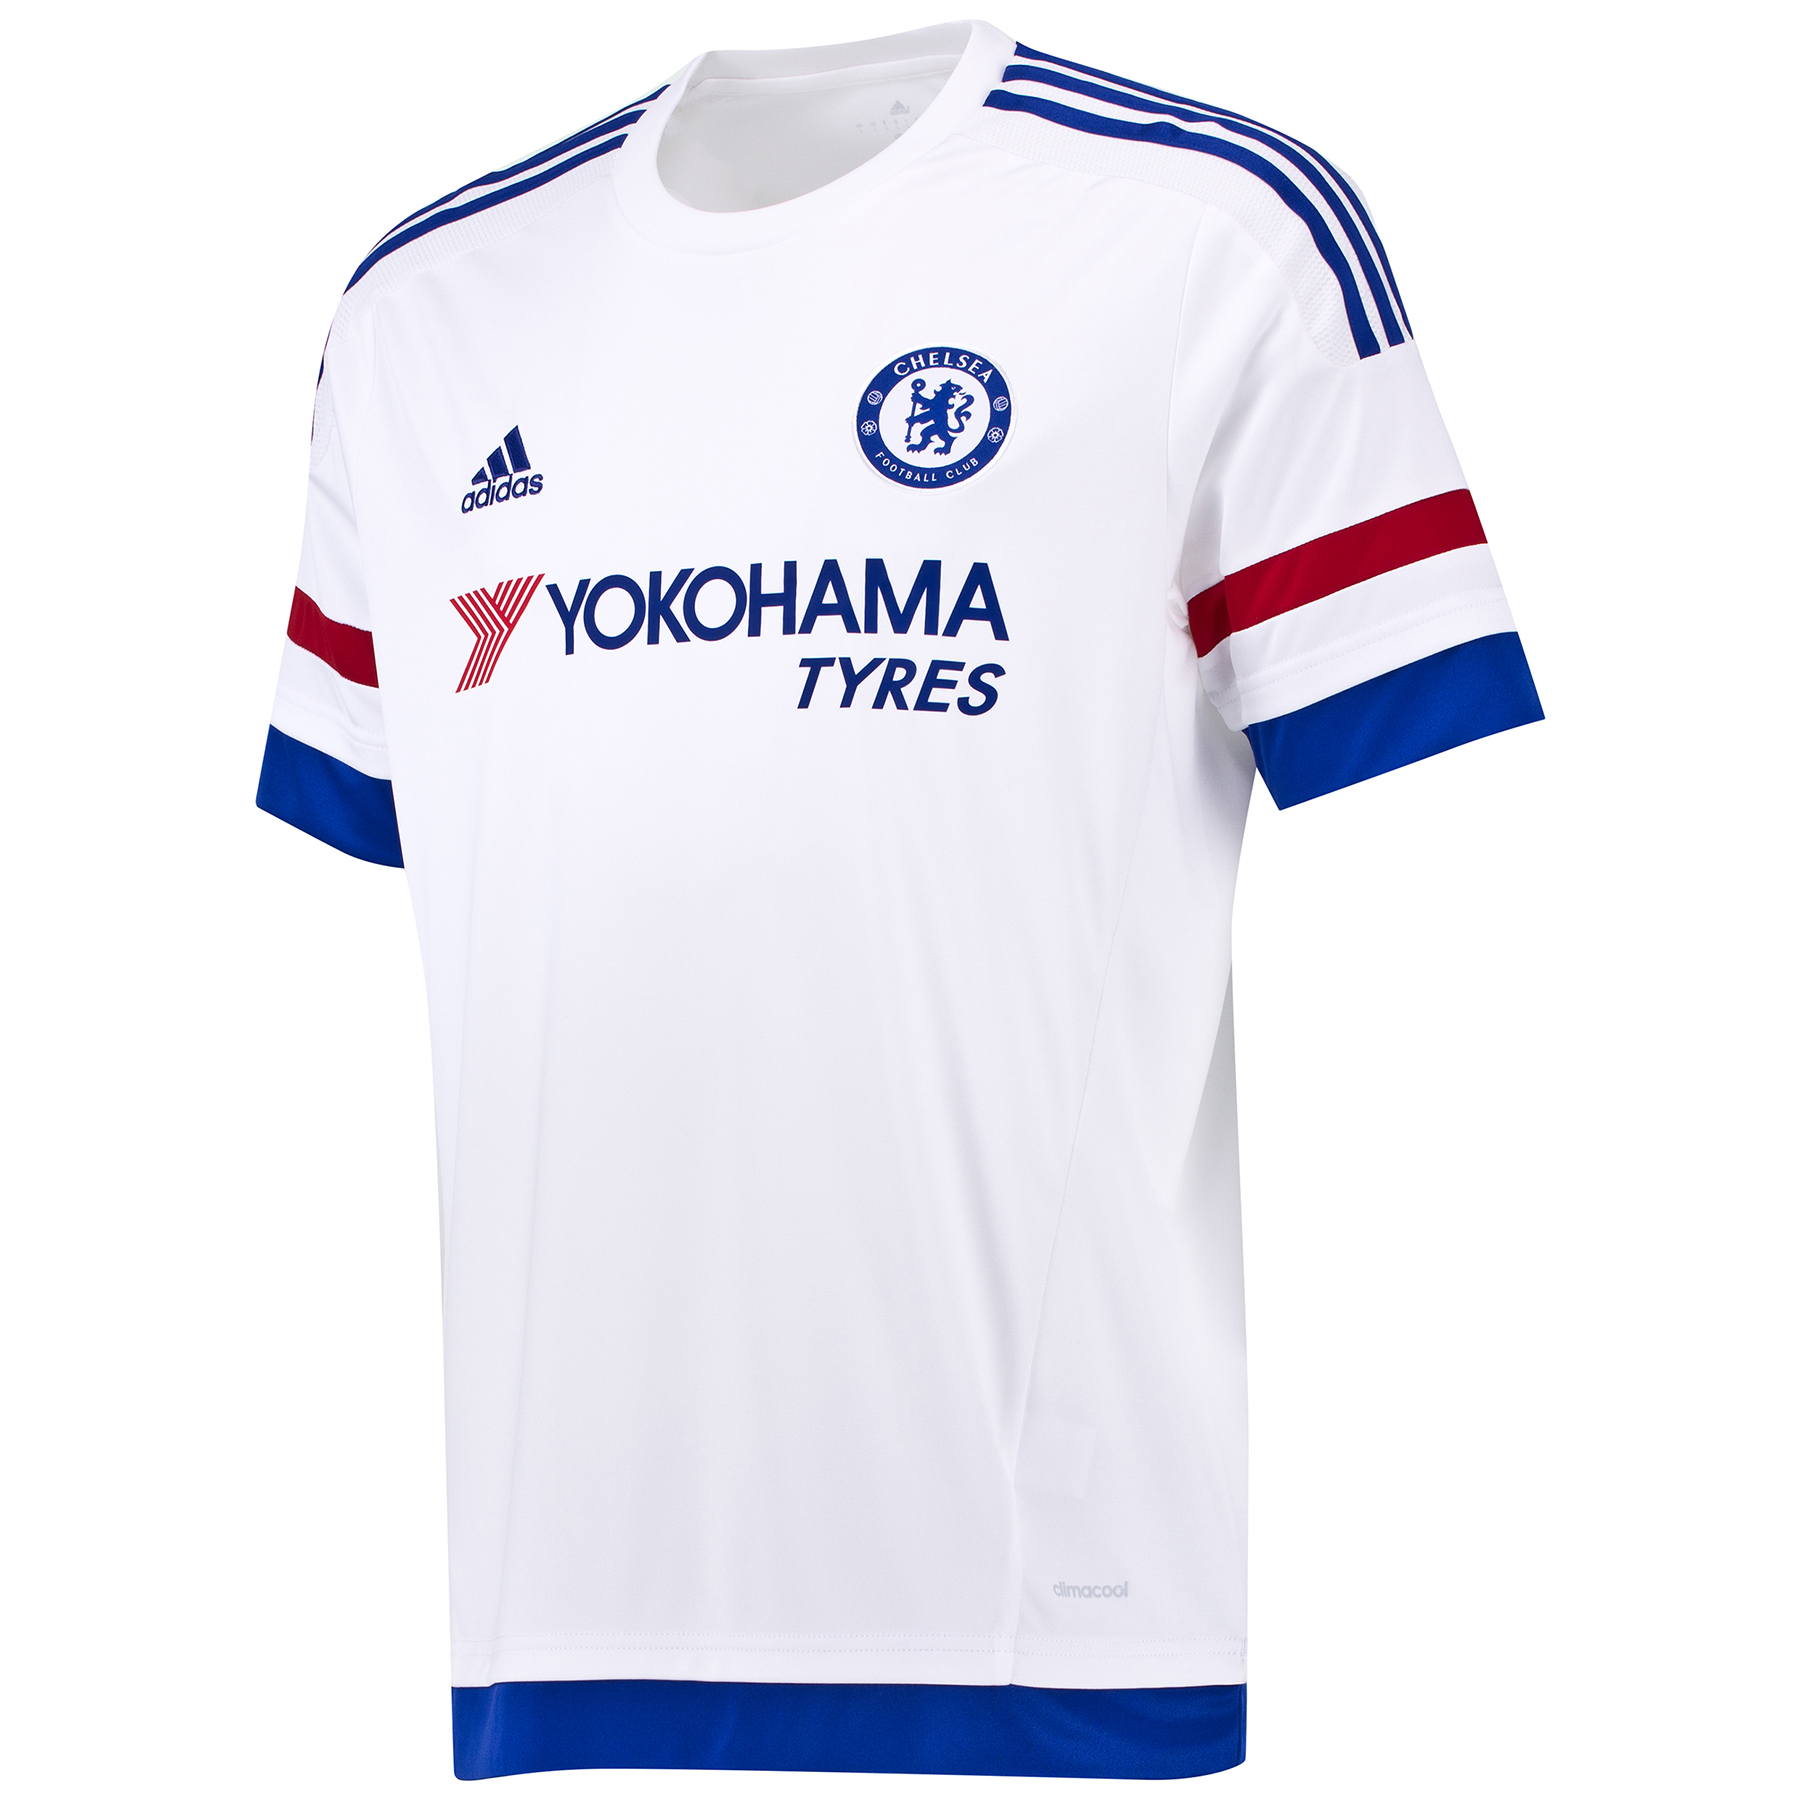 Chelsea Away Shirt 2015/16 Show your support for your favourite club with the new 2015/16 Chelsea Away Shirt. The Away Kit mirrors the colour story of the Home Kit in an unseen way: Red, White and Chelsea Blue stripes on the arms. The fingerprint label adds value and an authentic story. Join the likes of Diego Costa, Cesc Fabregas and Eden Hazard and order your new Chelsea shirt today! Benefits: Engineered fabric on front CLIMACOOL® Provides heat and moisture management through ventilation Regular Fit Club crest: woven badge 100% Polyester The fingerprint represents the identity of all Chelsea fansIconic stripes on the arms